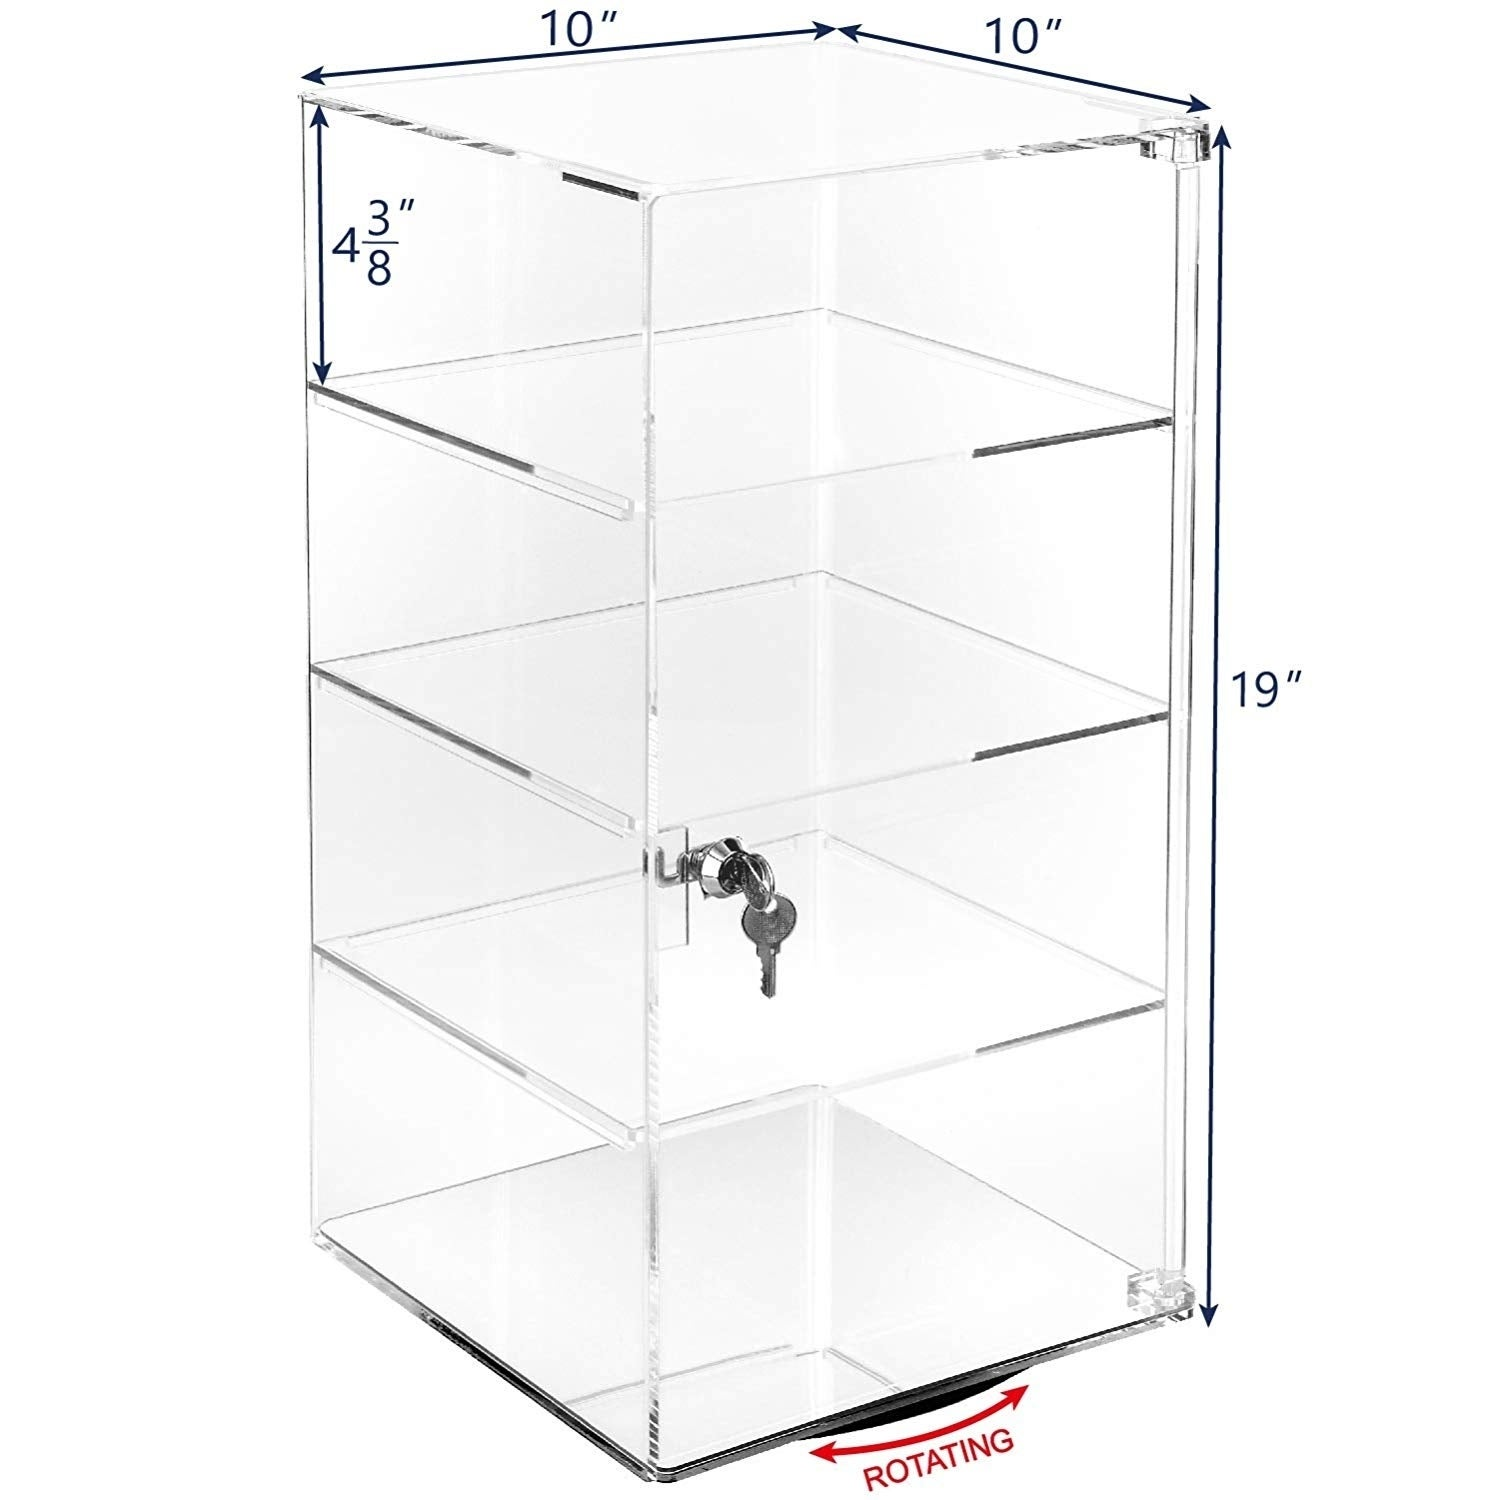 Ikee Design Rotating Acrylic Display Stand Lockable Showcase Display Case  With 3 Removable Shelves